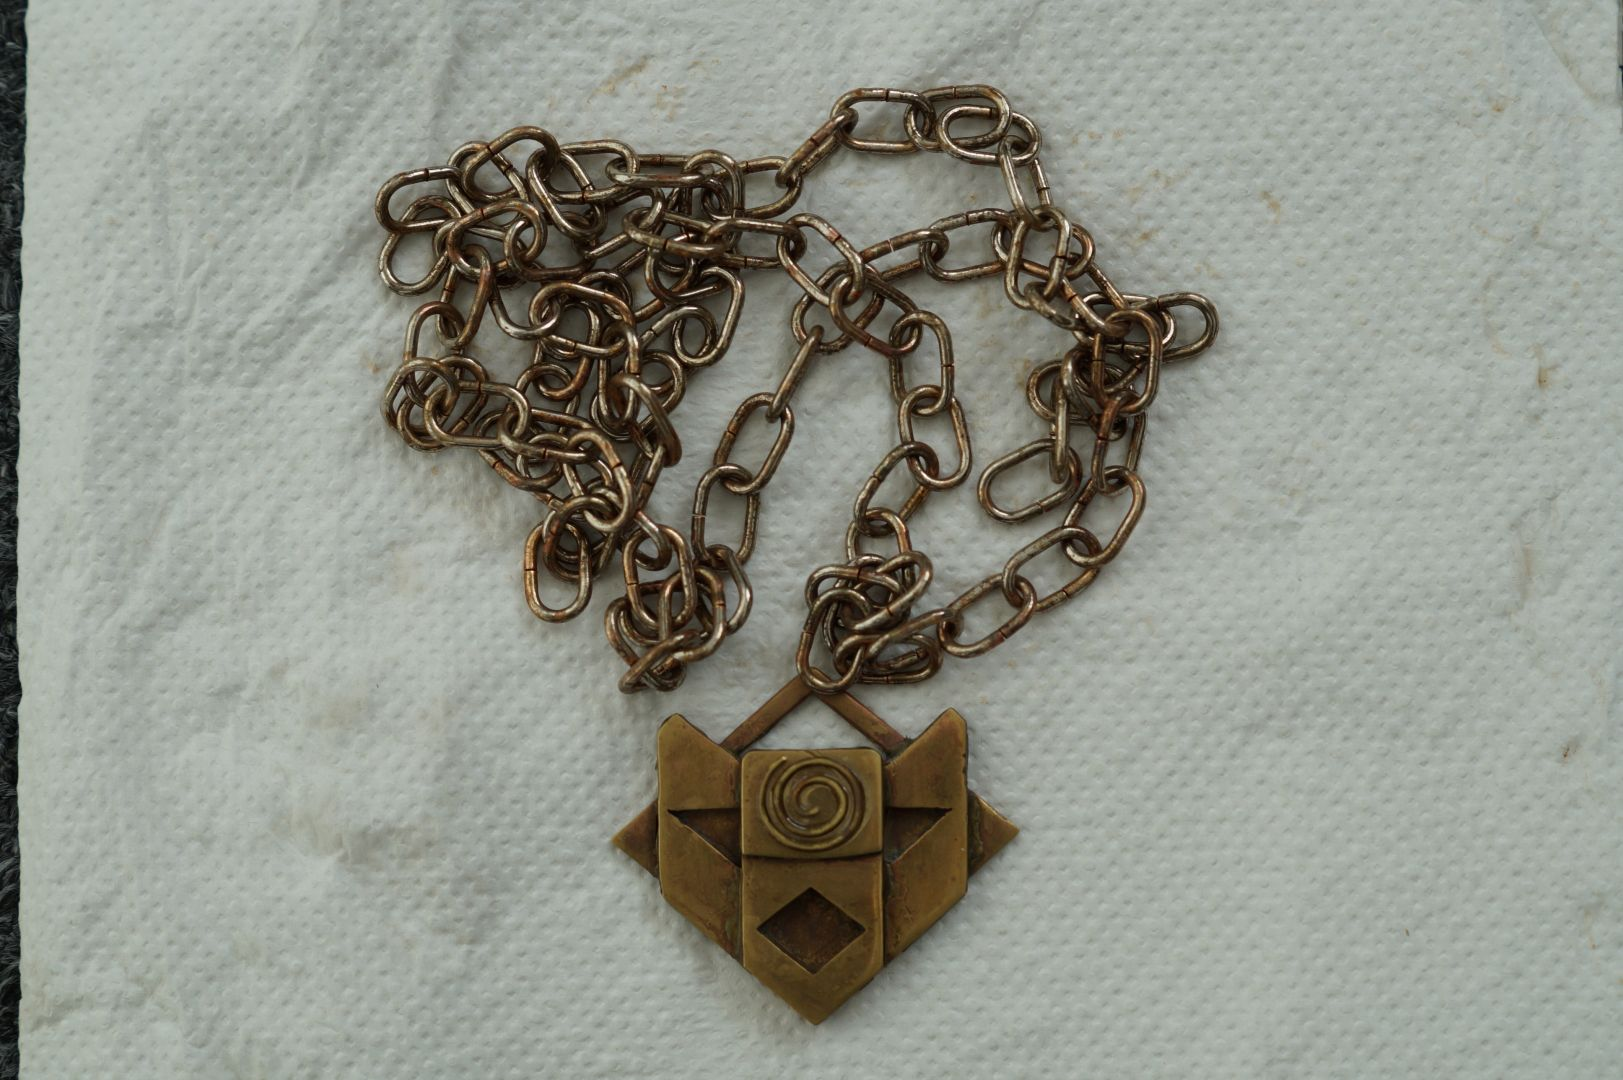 Fate of Atlantis Charm Chain rusted